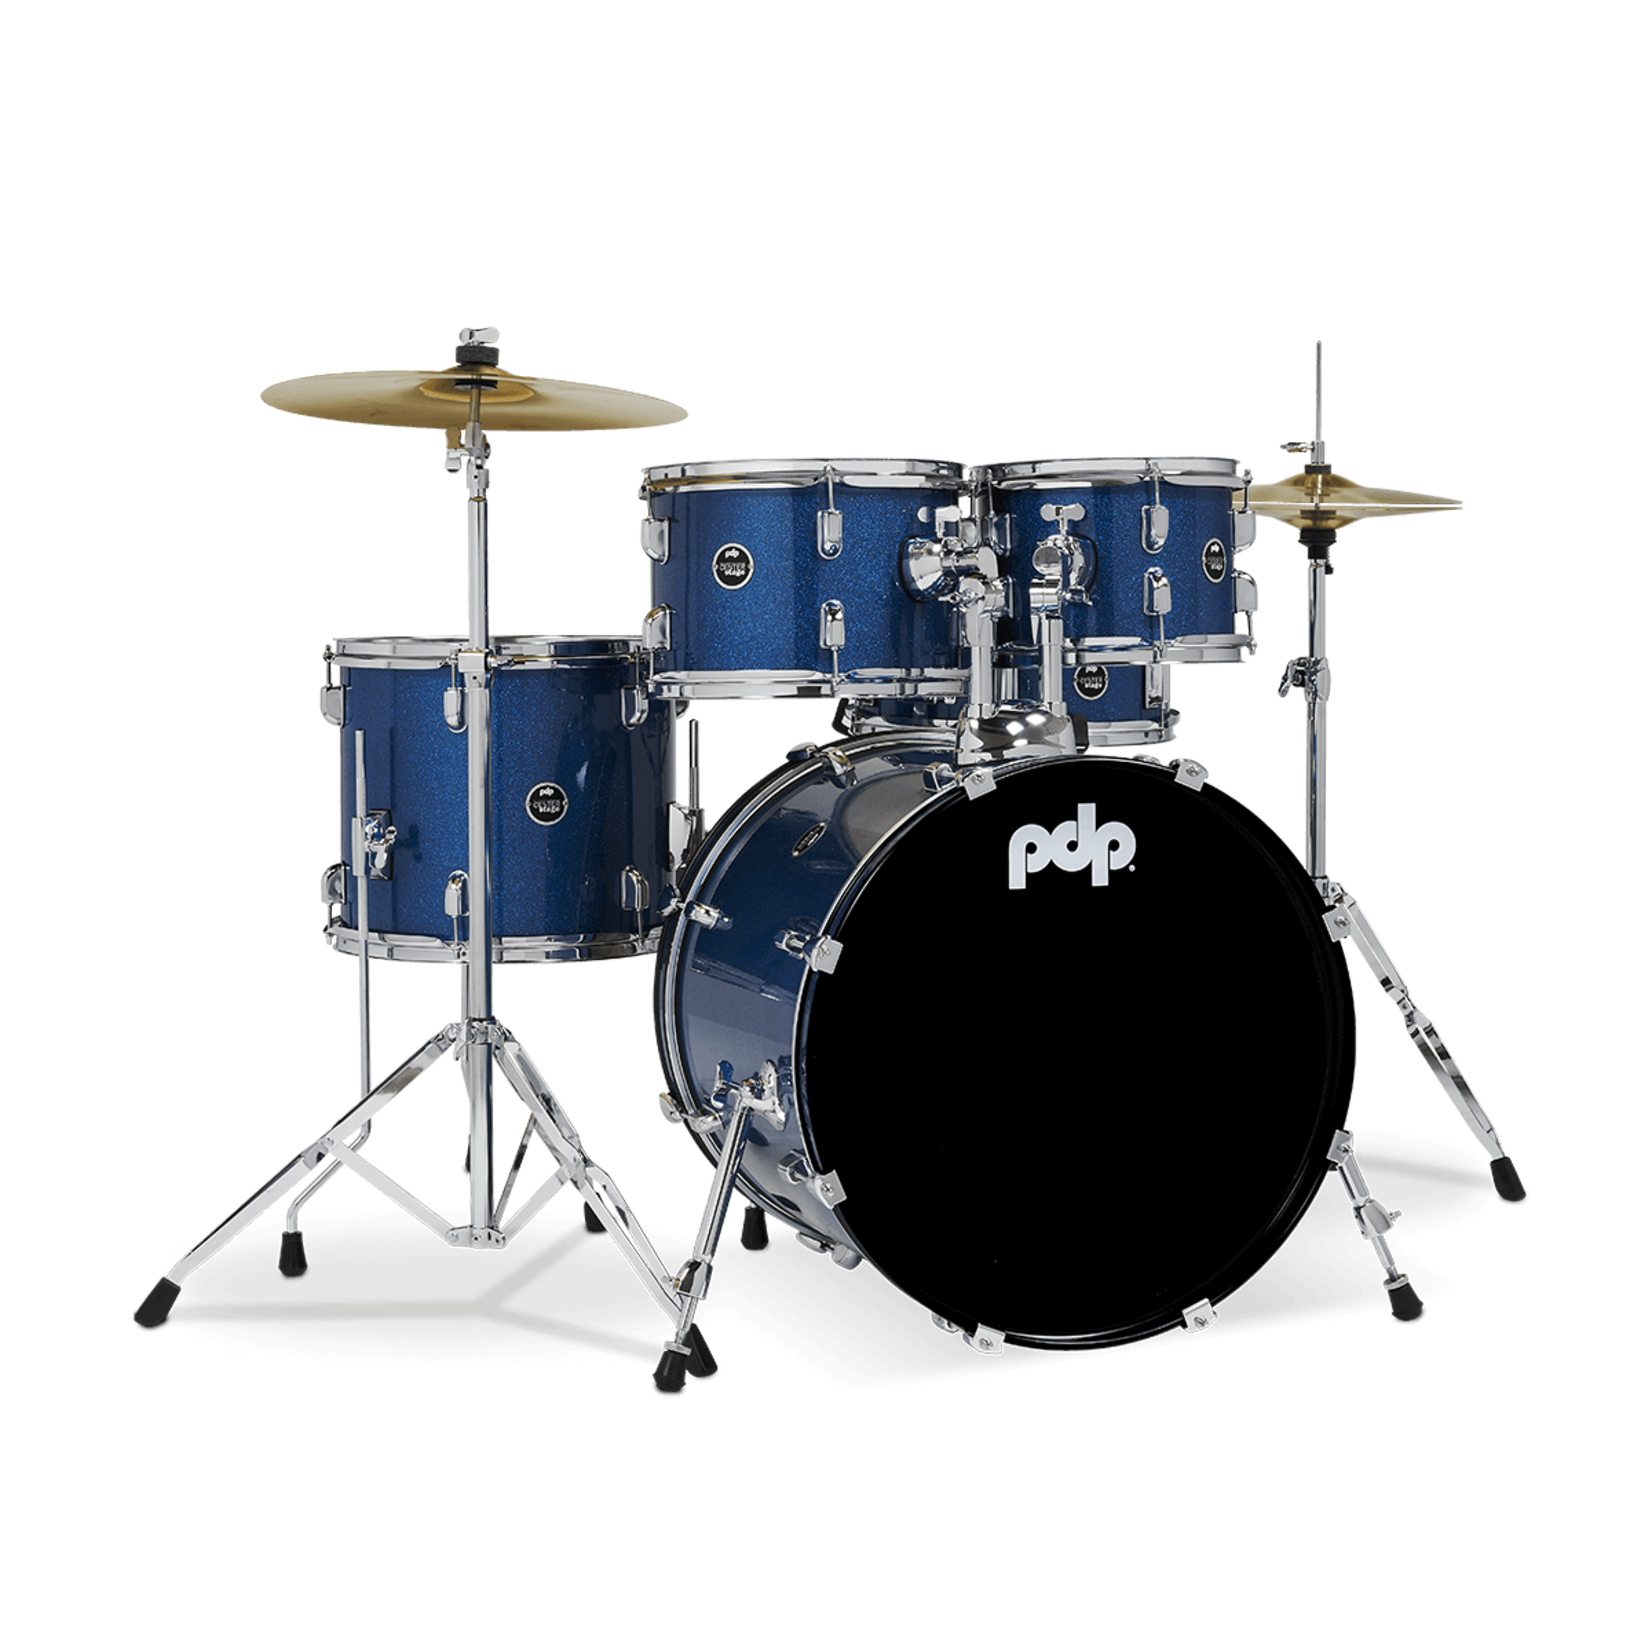 PDP PDP CENTER STAGE 5-PC DRUM SET W/ CYMBALS & HARDWARE (ROYAL BLUE SPARKLE)